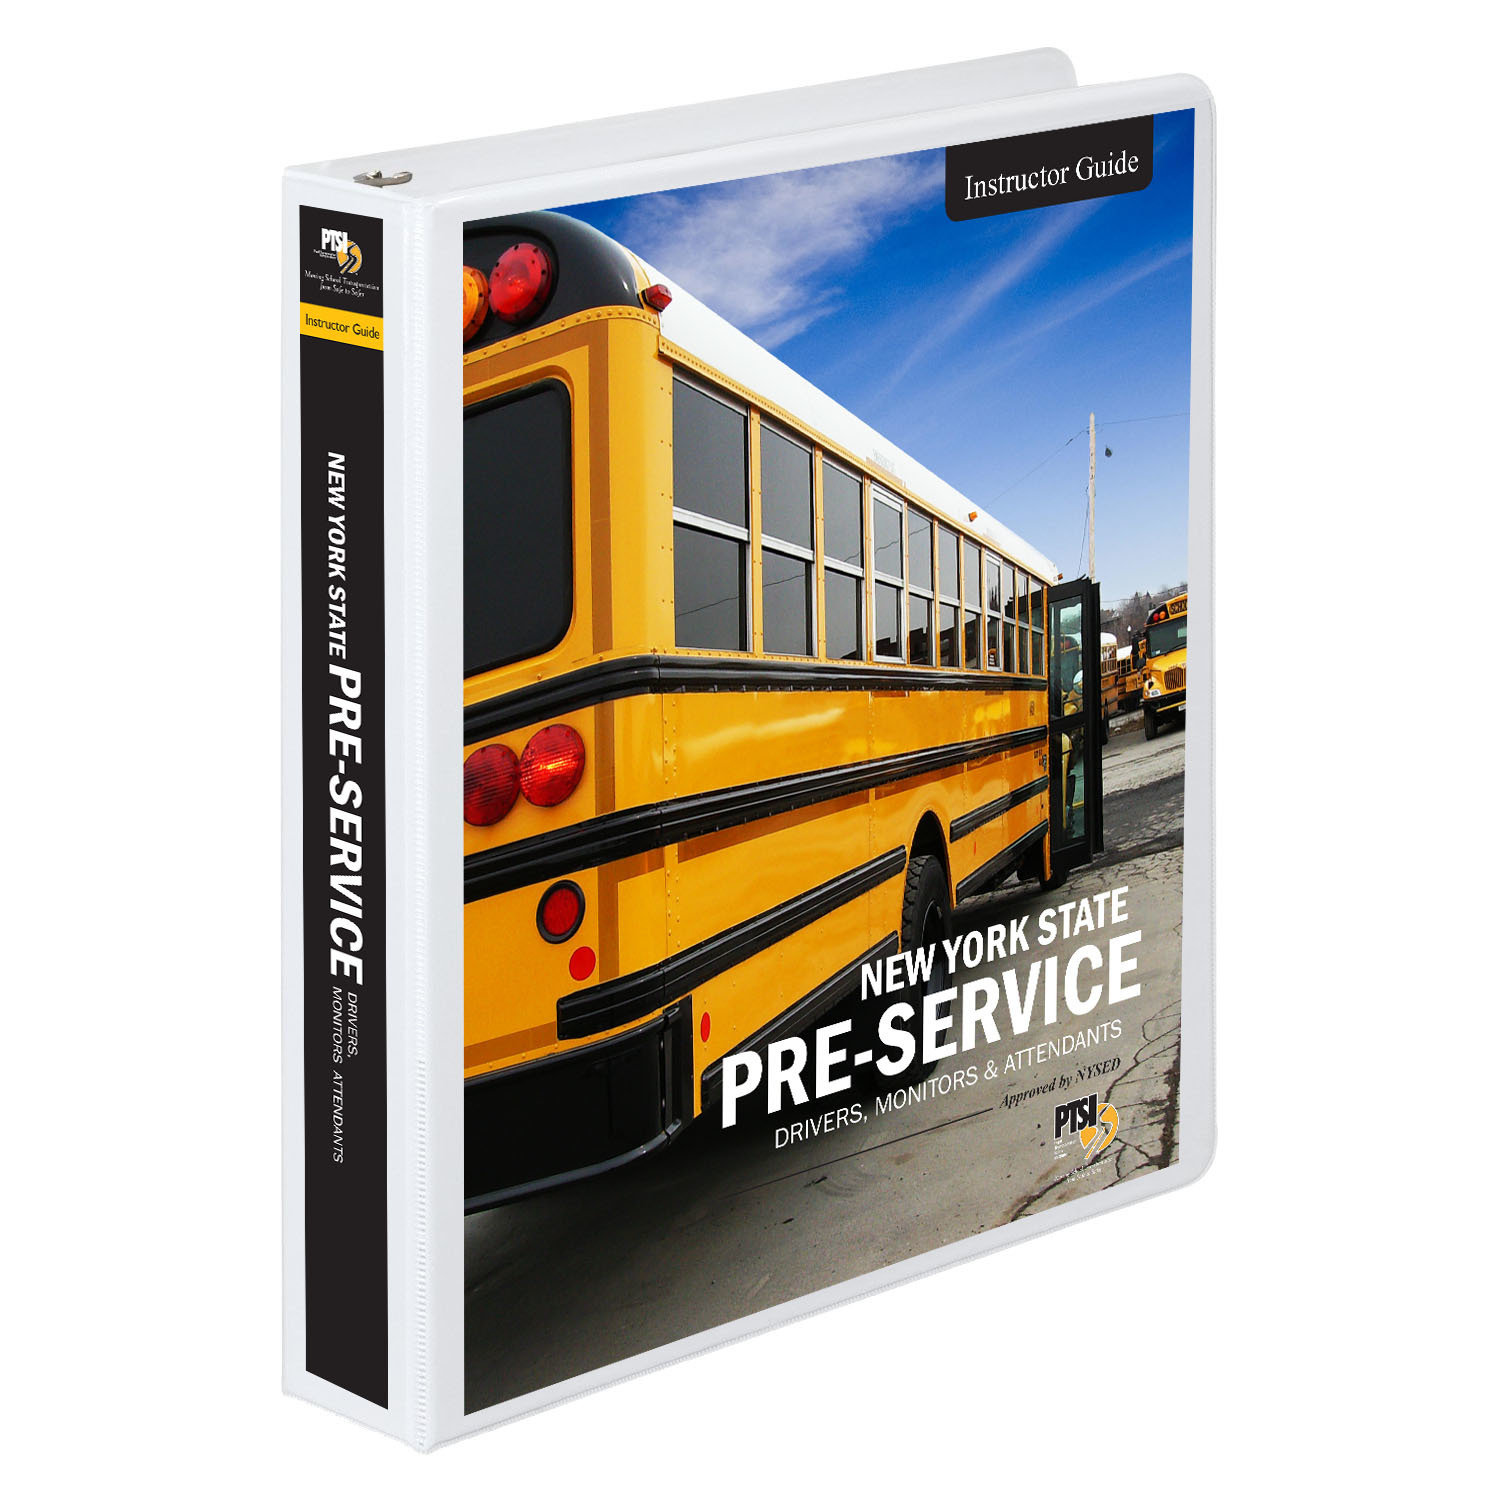 NYS PRE-SERVICE for Drivers, Monitors & Attendants Instructor Guide